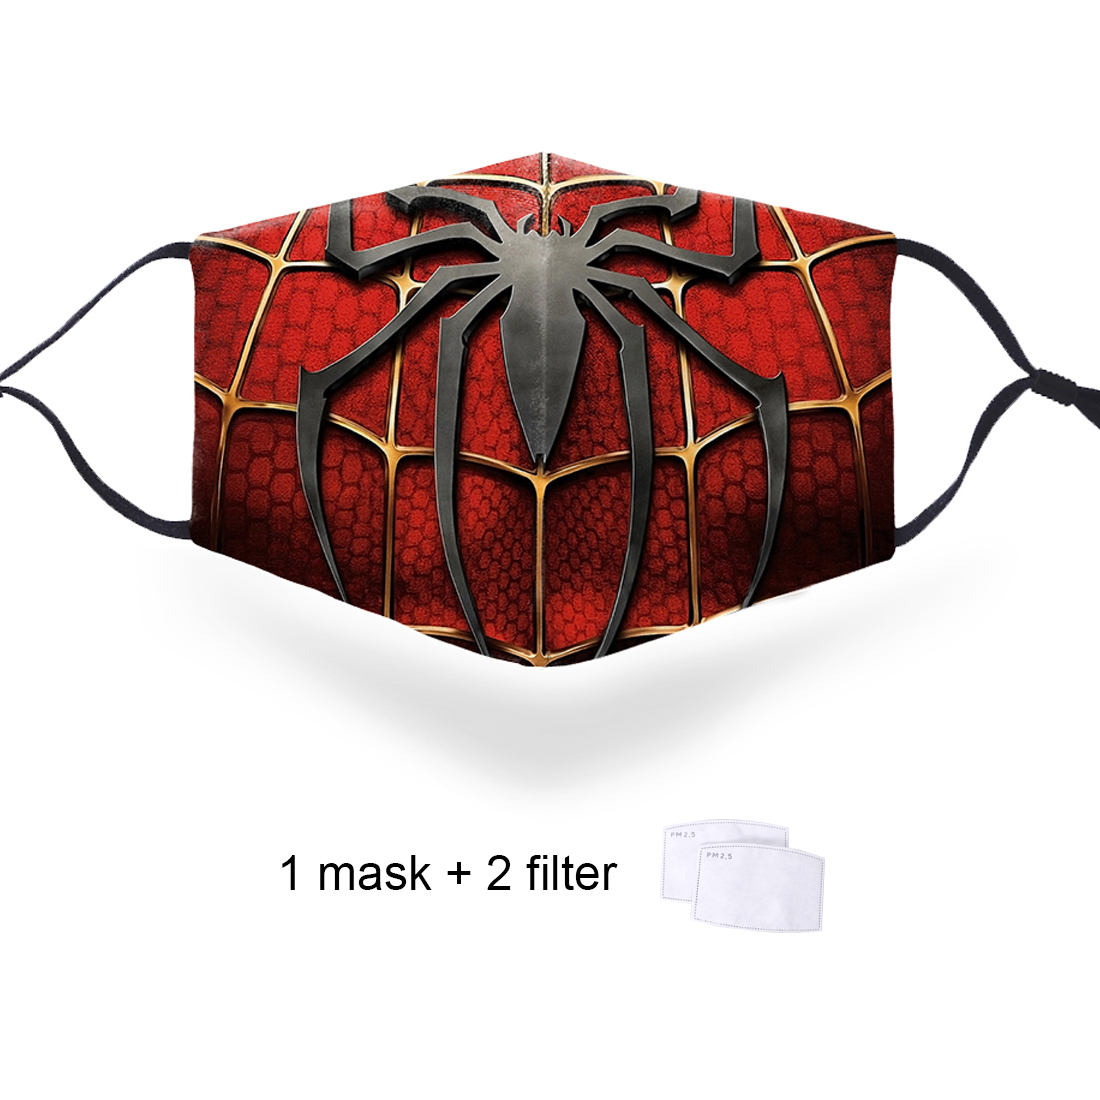 Superman Spiderman Fashion 3D Masks PM2.5 Filter Face Respirator Anti Mouth Mask Marvel Protective Washable Soft Face Masks